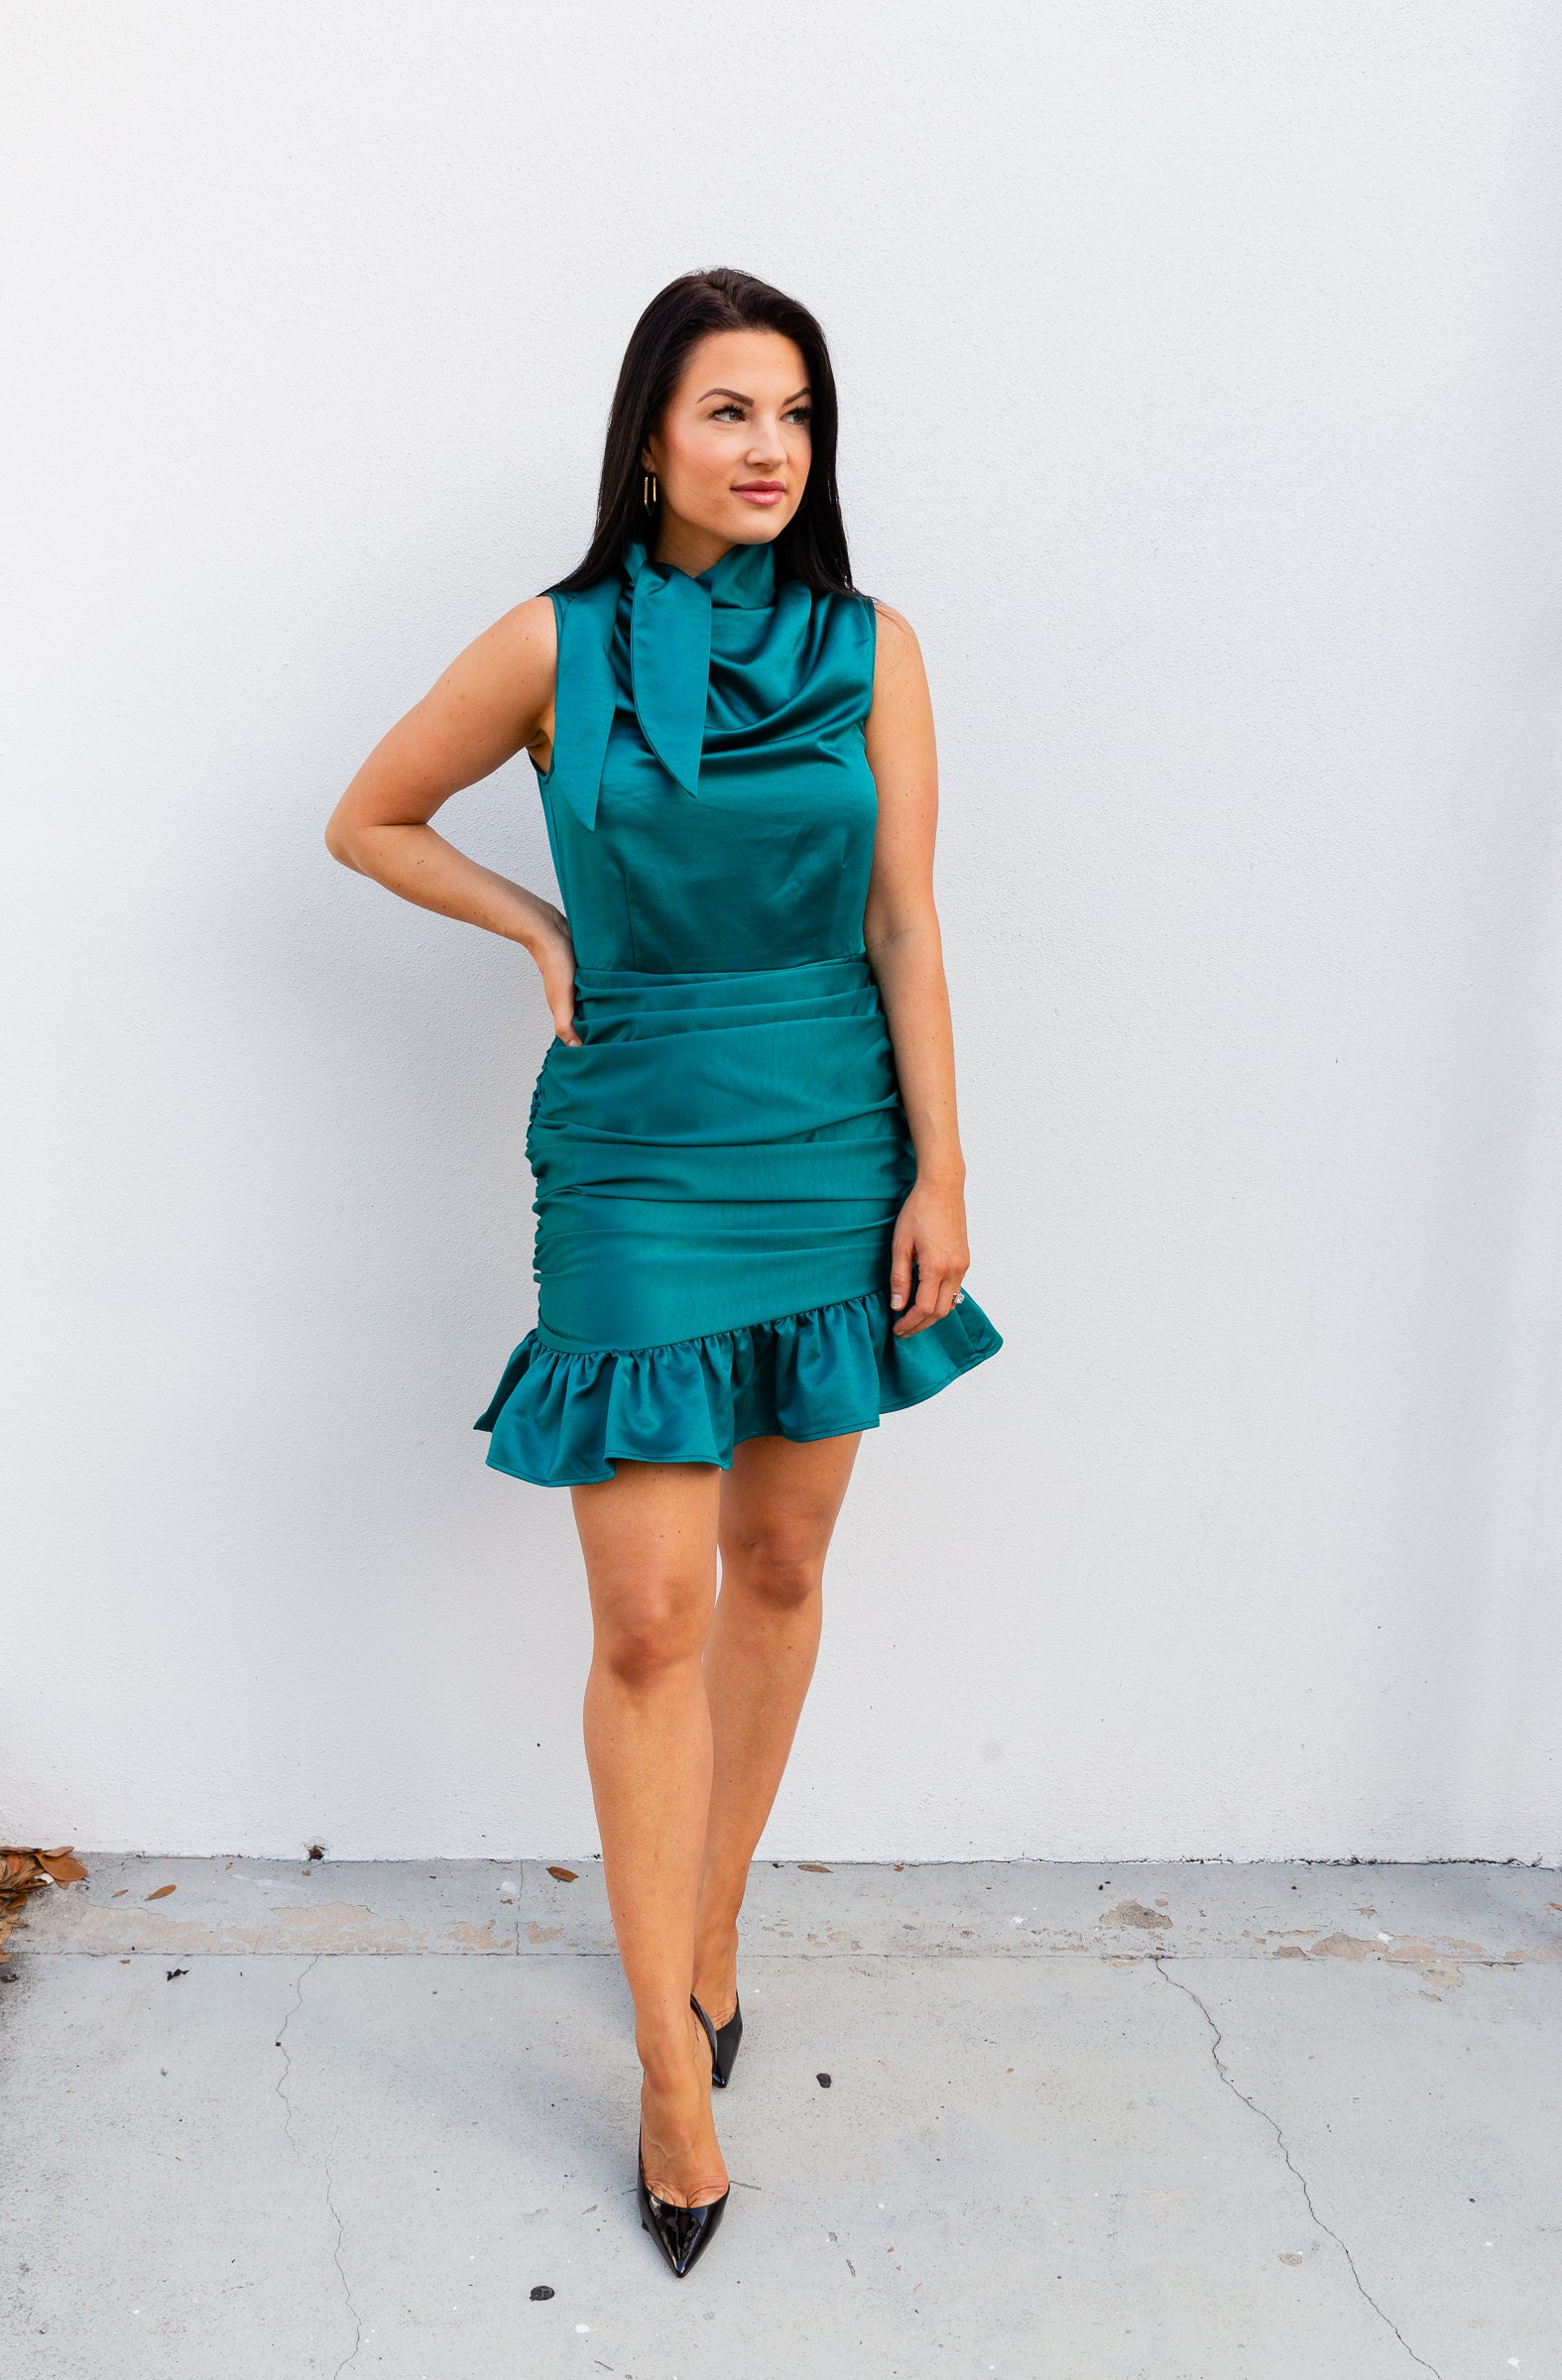 High mock neckline with a tie hem leading to a ruched and darted bodice silhouette meets a fitted waistband before going down into a ruched and gathered mini skirt with a ruffle hem at the bottom.